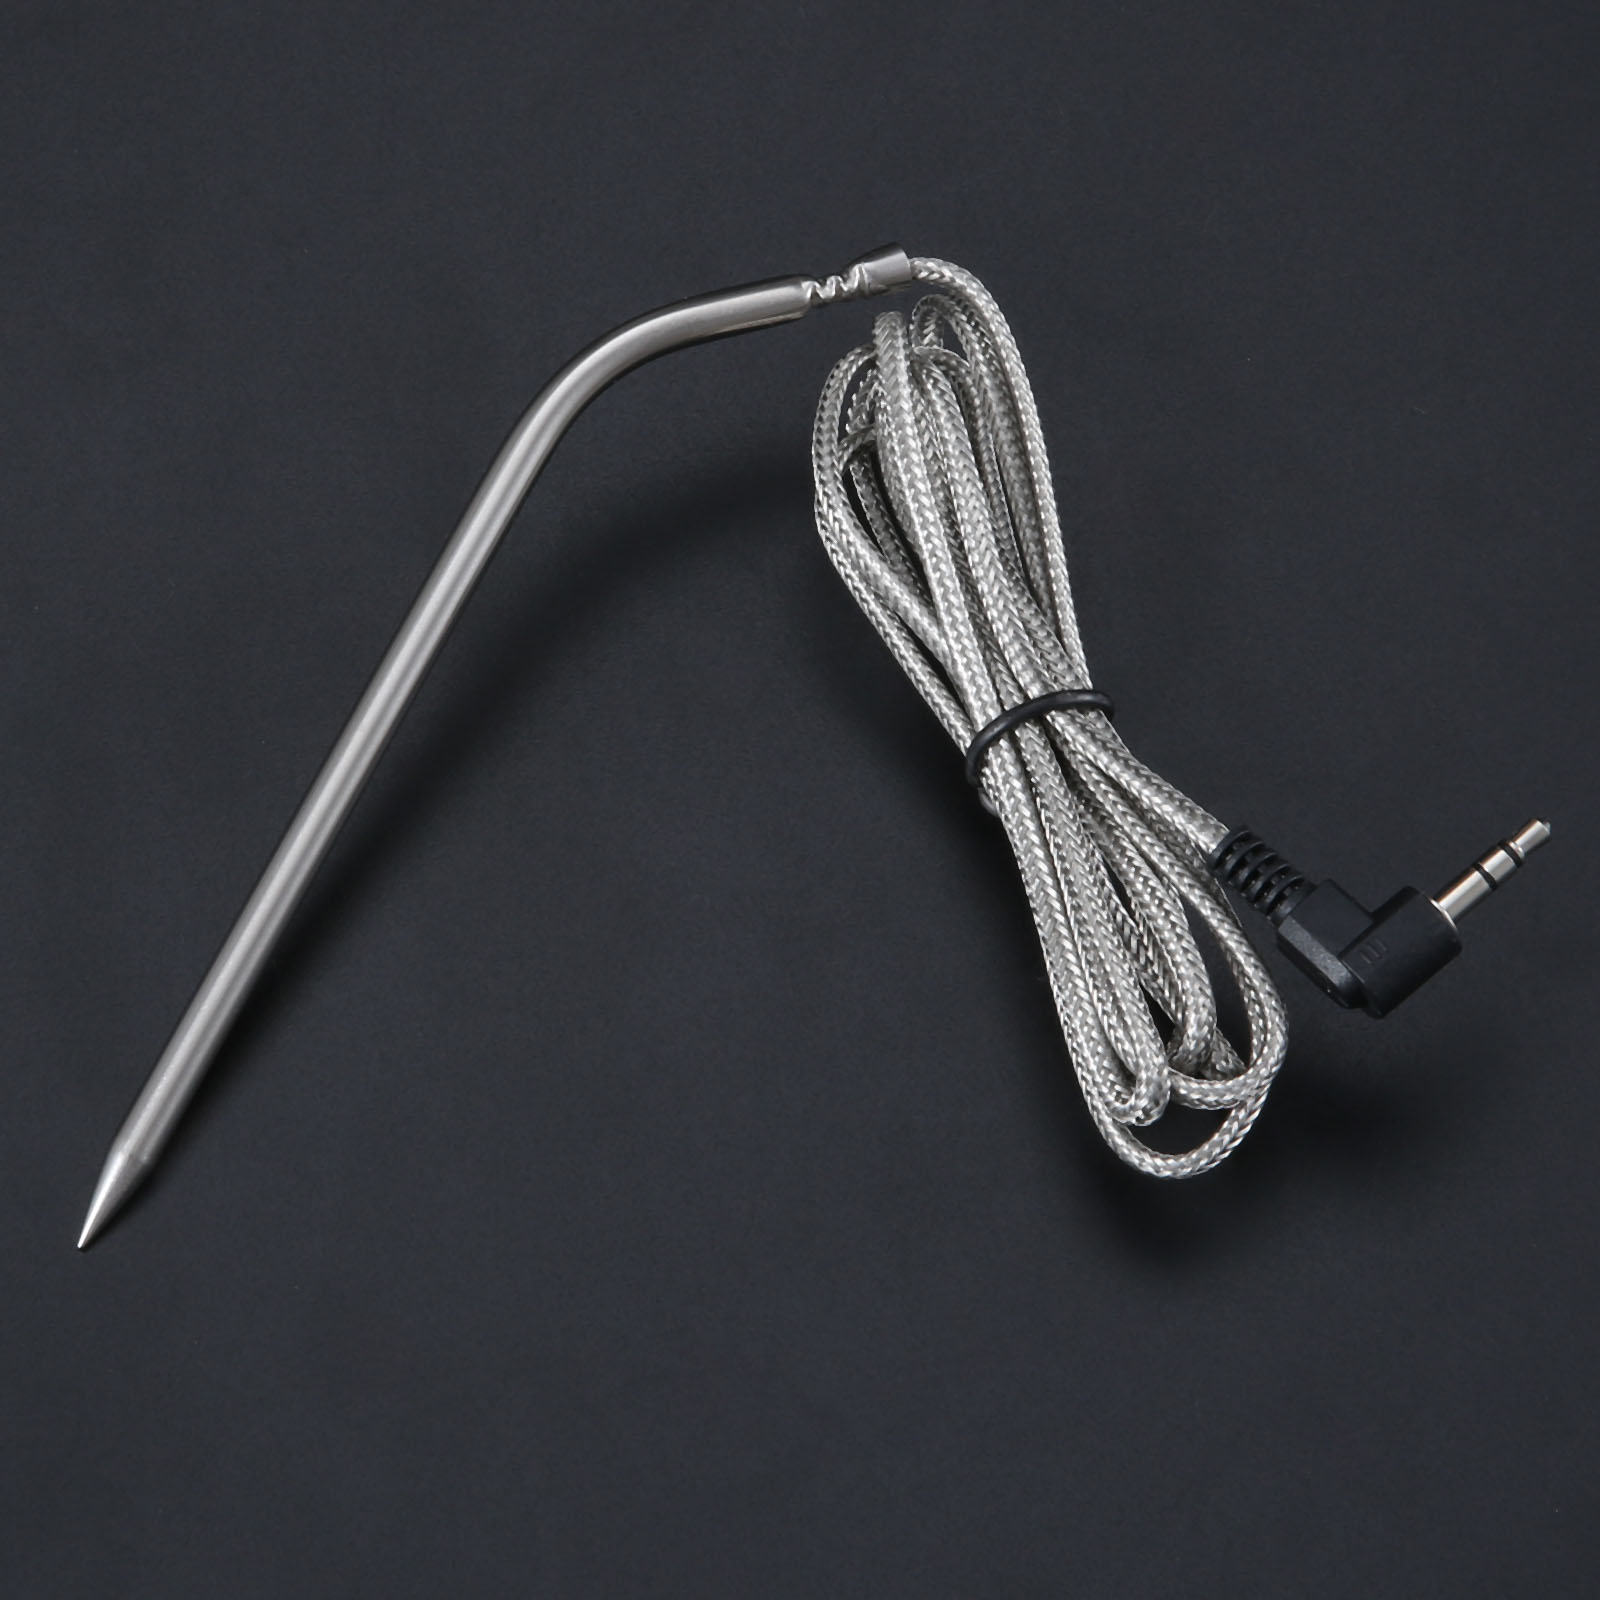 Replacement High-Temperature Meat BBQ Probe Fits For Camp Chef Wood Pellet Grill CC-N01